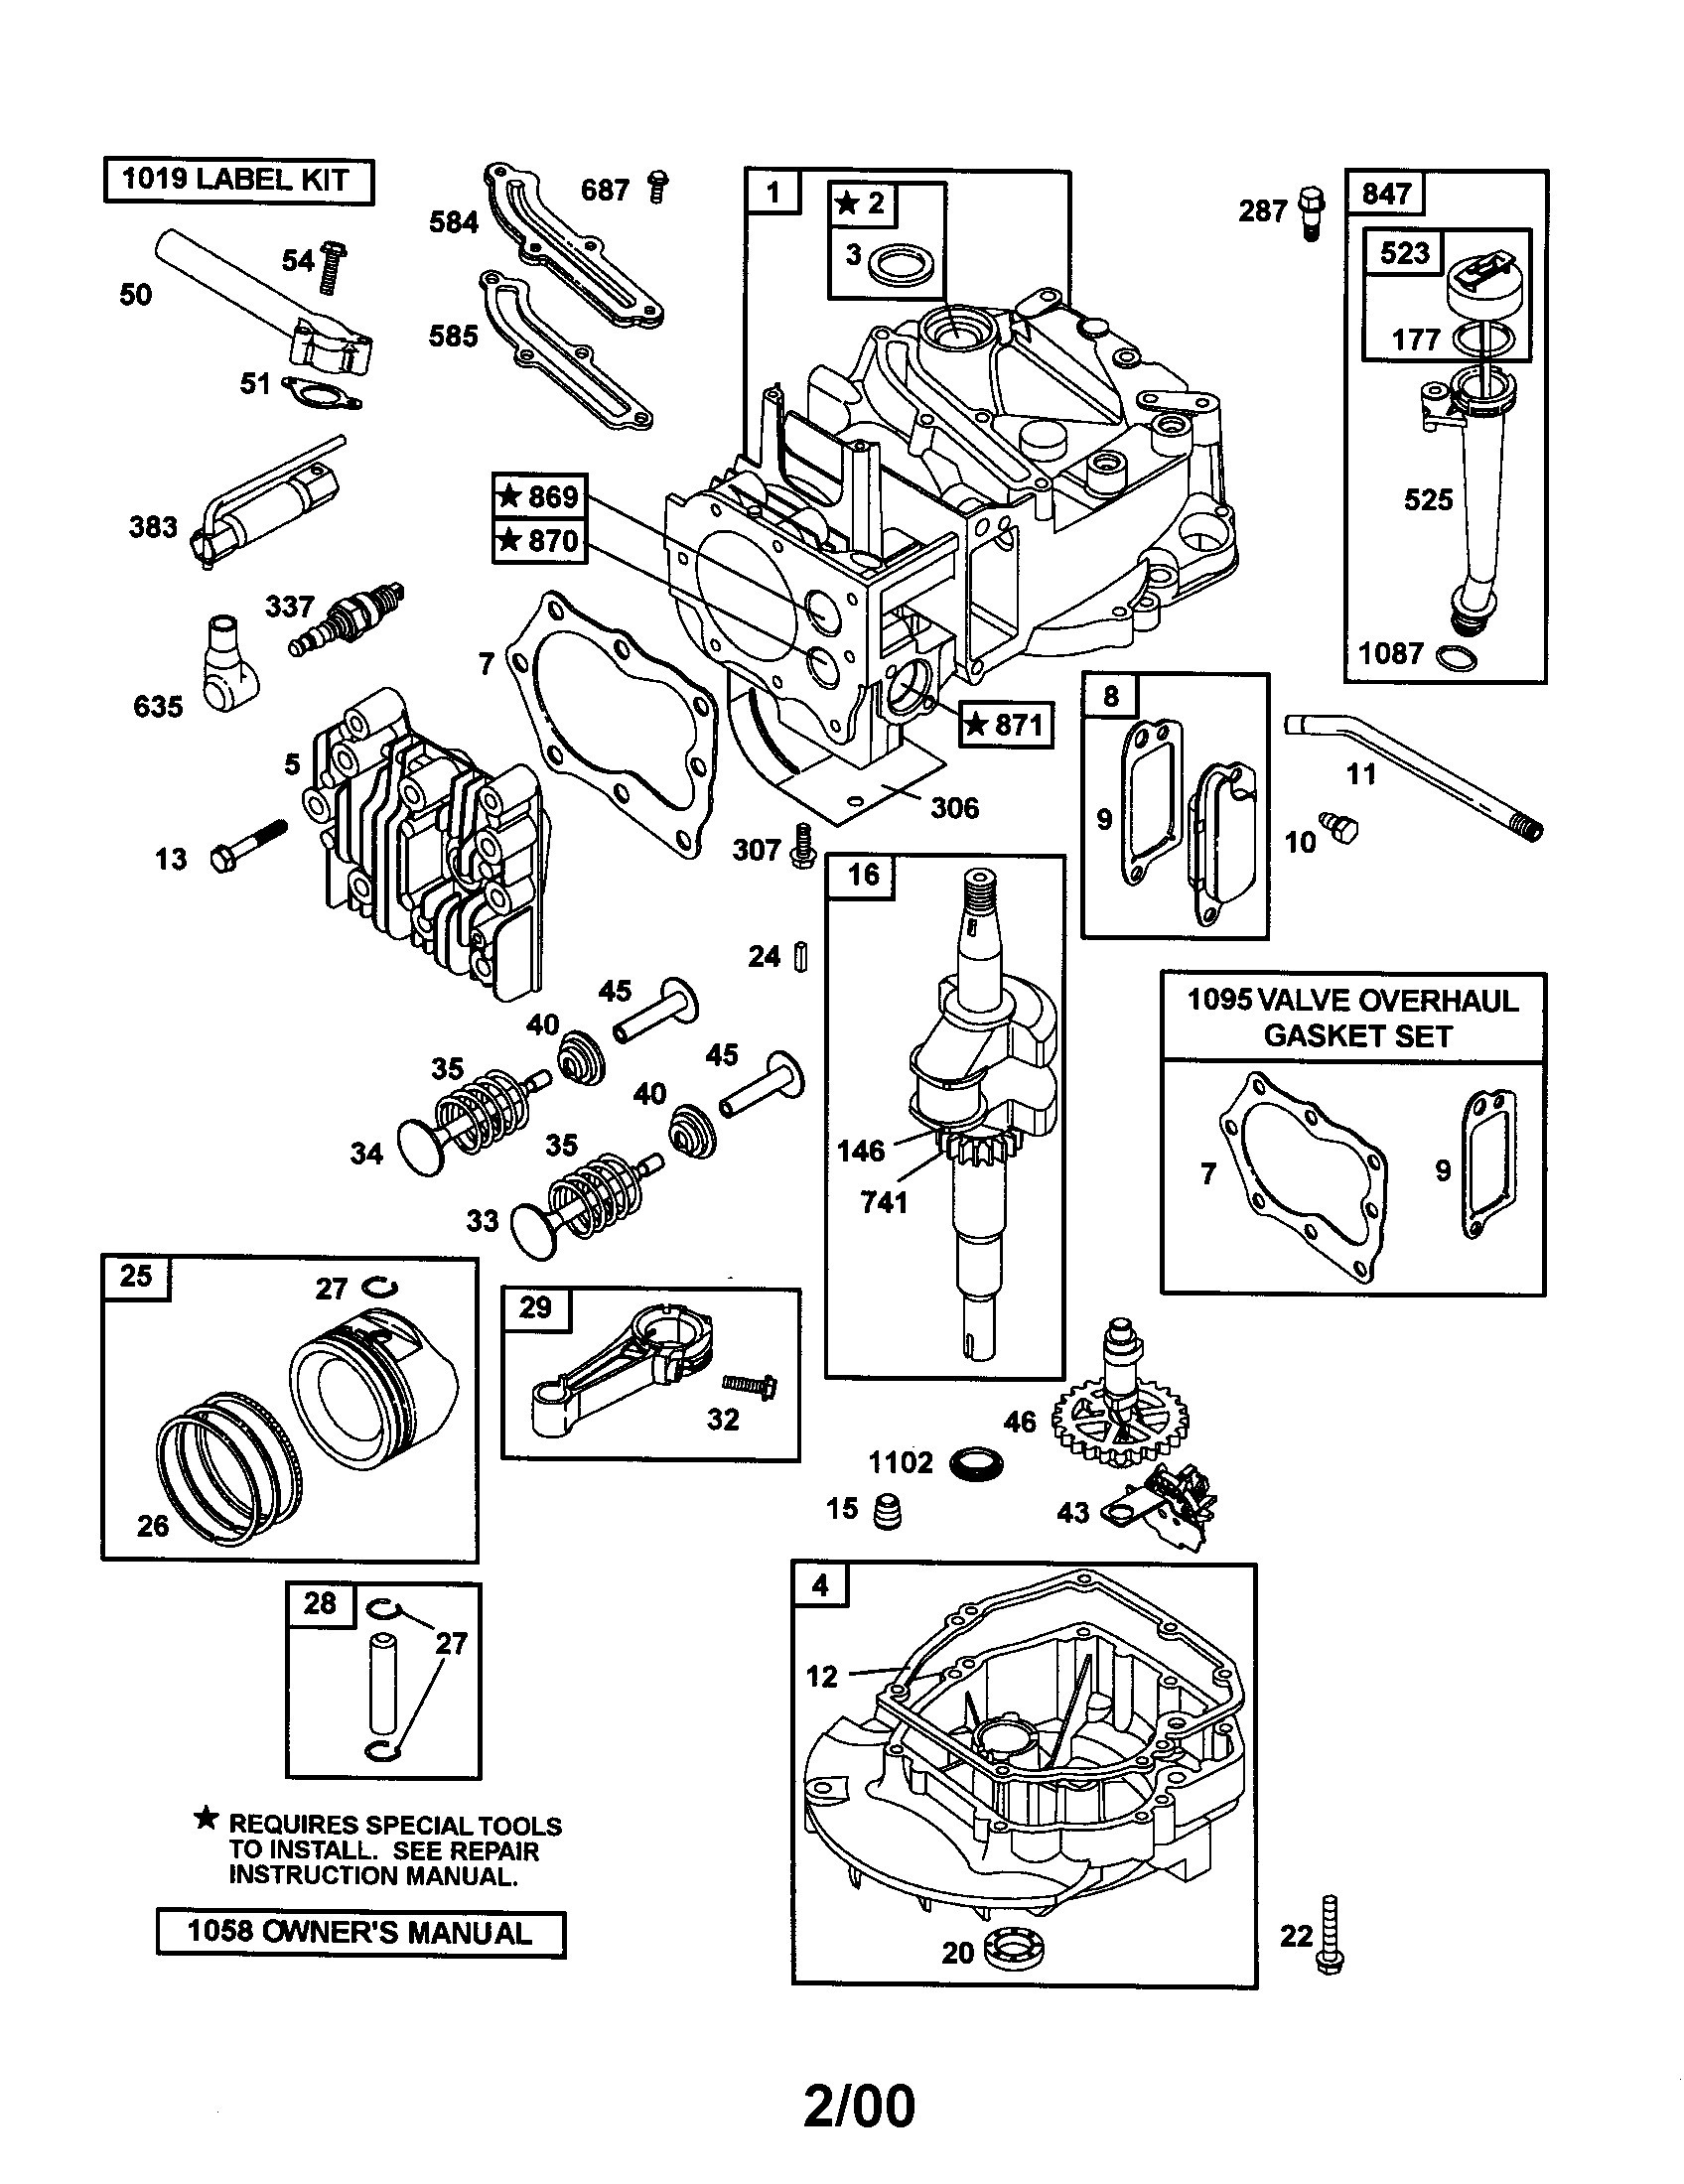 Briggs and Stratton Engine Diagrams | My Wiring DIagram